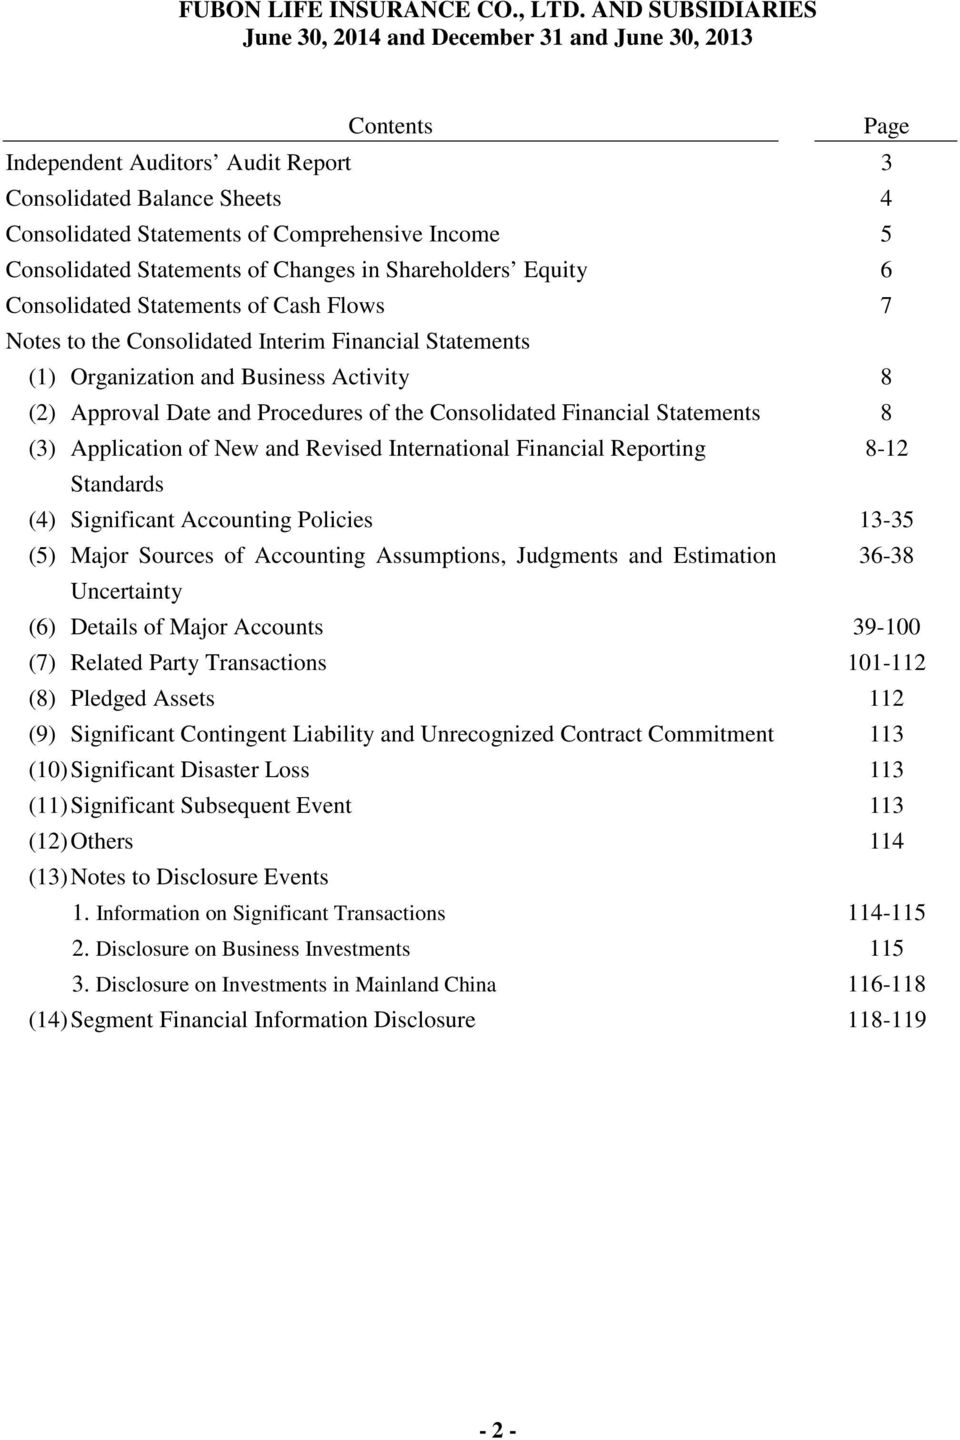 Consolidated Financial Statements 8 (3) Application of New and Revised International Financial Reporting 8-12 Standards (4) Significant Accounting Policies 13-35 (5) Major Sources of Accounting